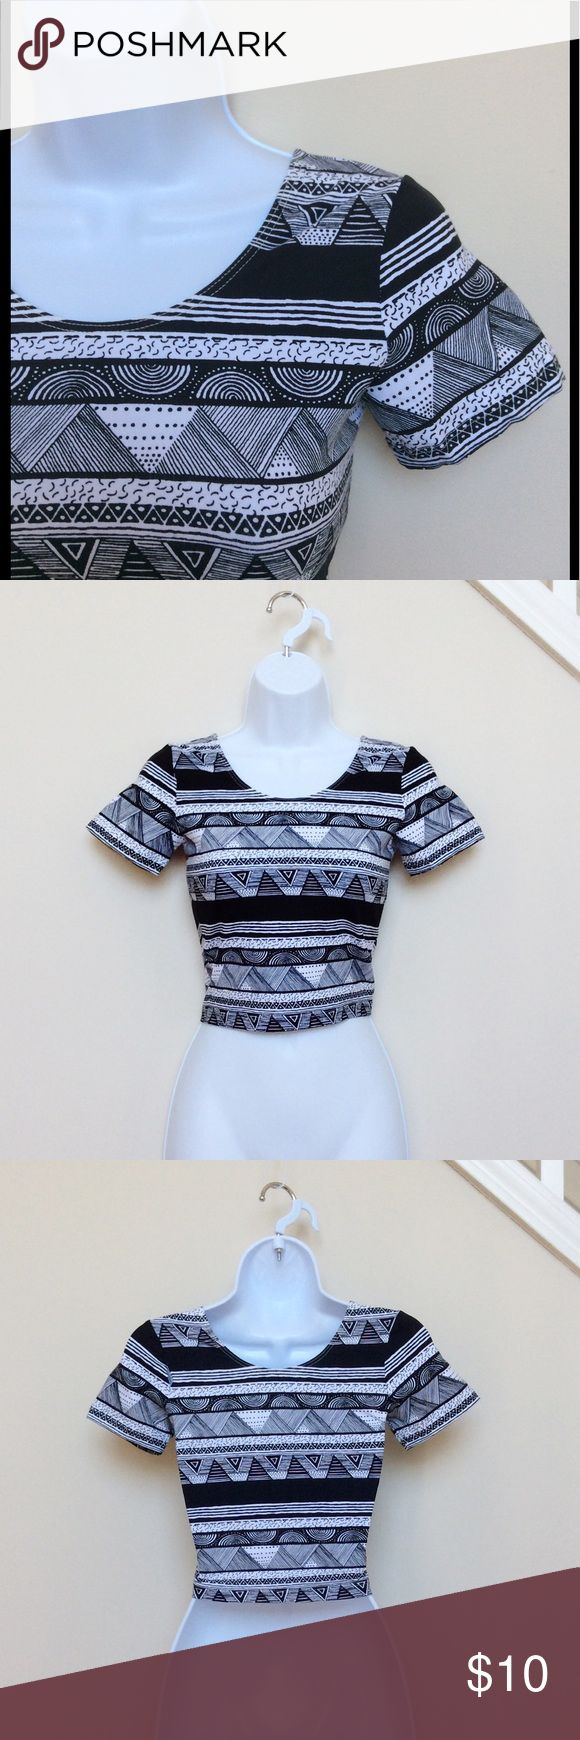 American Apparel Black and White Aztec Crop Top Black and white short sleeve crop top with Aztec pattern from American Apparel.  This top is brand new, but it was bought online, so it does not have store tags. Size small, measures 15 inches from shoulder. *Please note: There is a rip in the seam near the shoulder, as pictured.  Easily repaired! :) American Apparel Tops Crop Tops